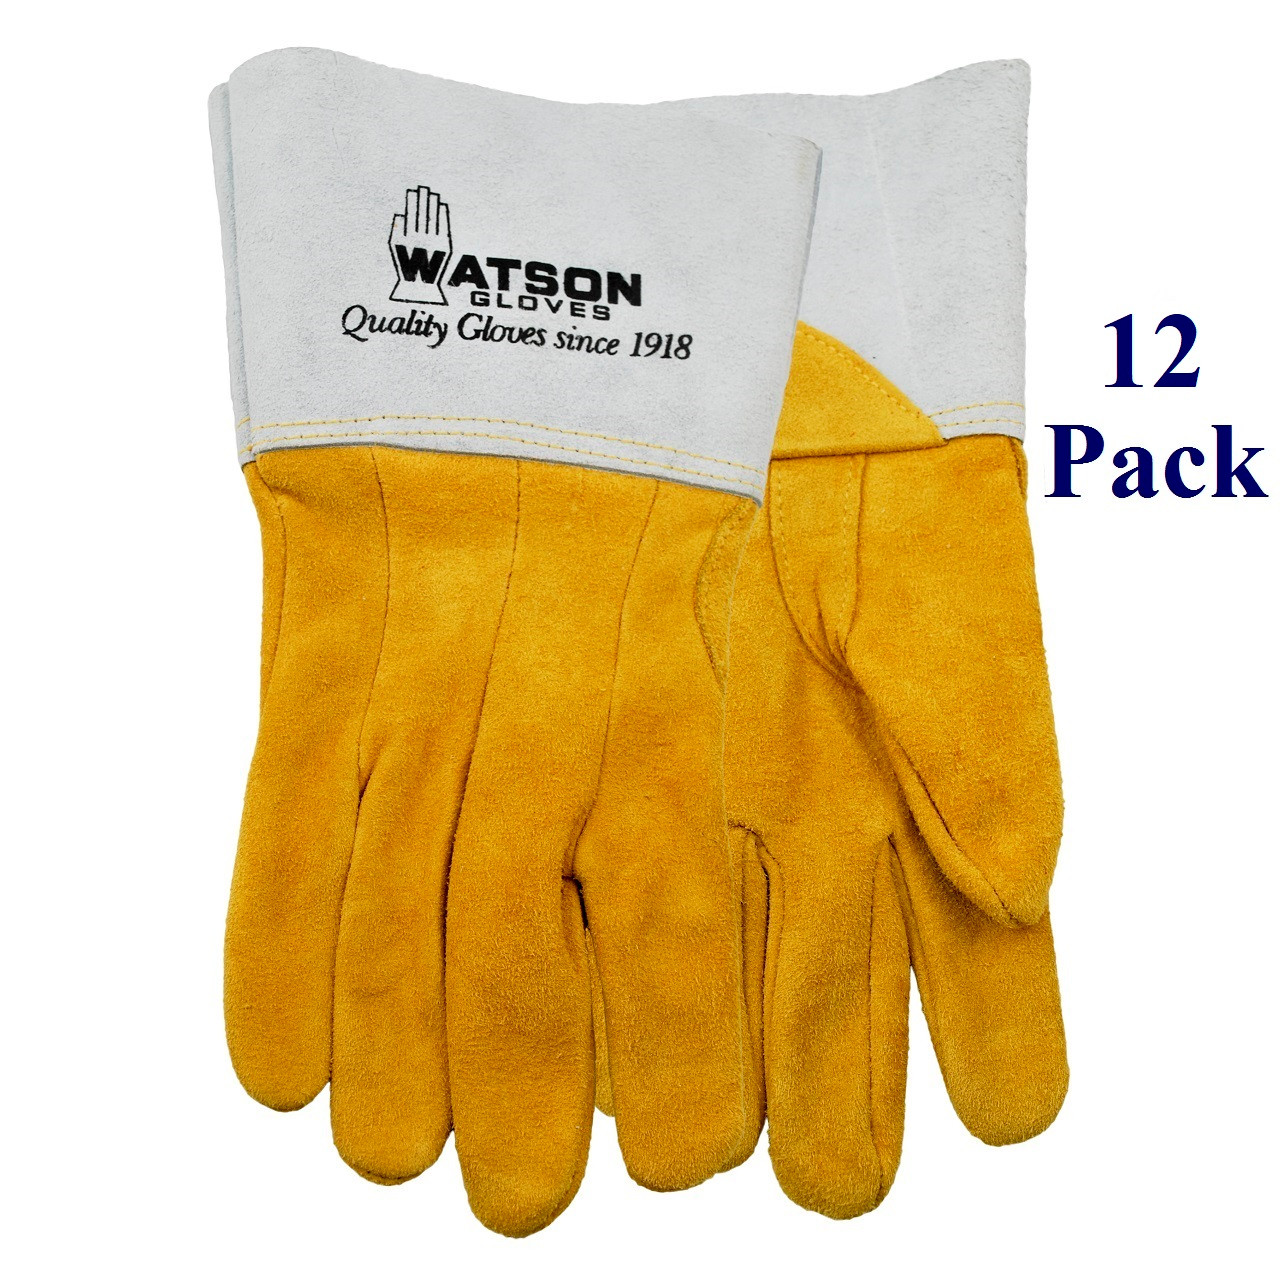 d5f782c5cd6d6 Watson Tigger Gloves 12 Pack - KeepItDirect.ca